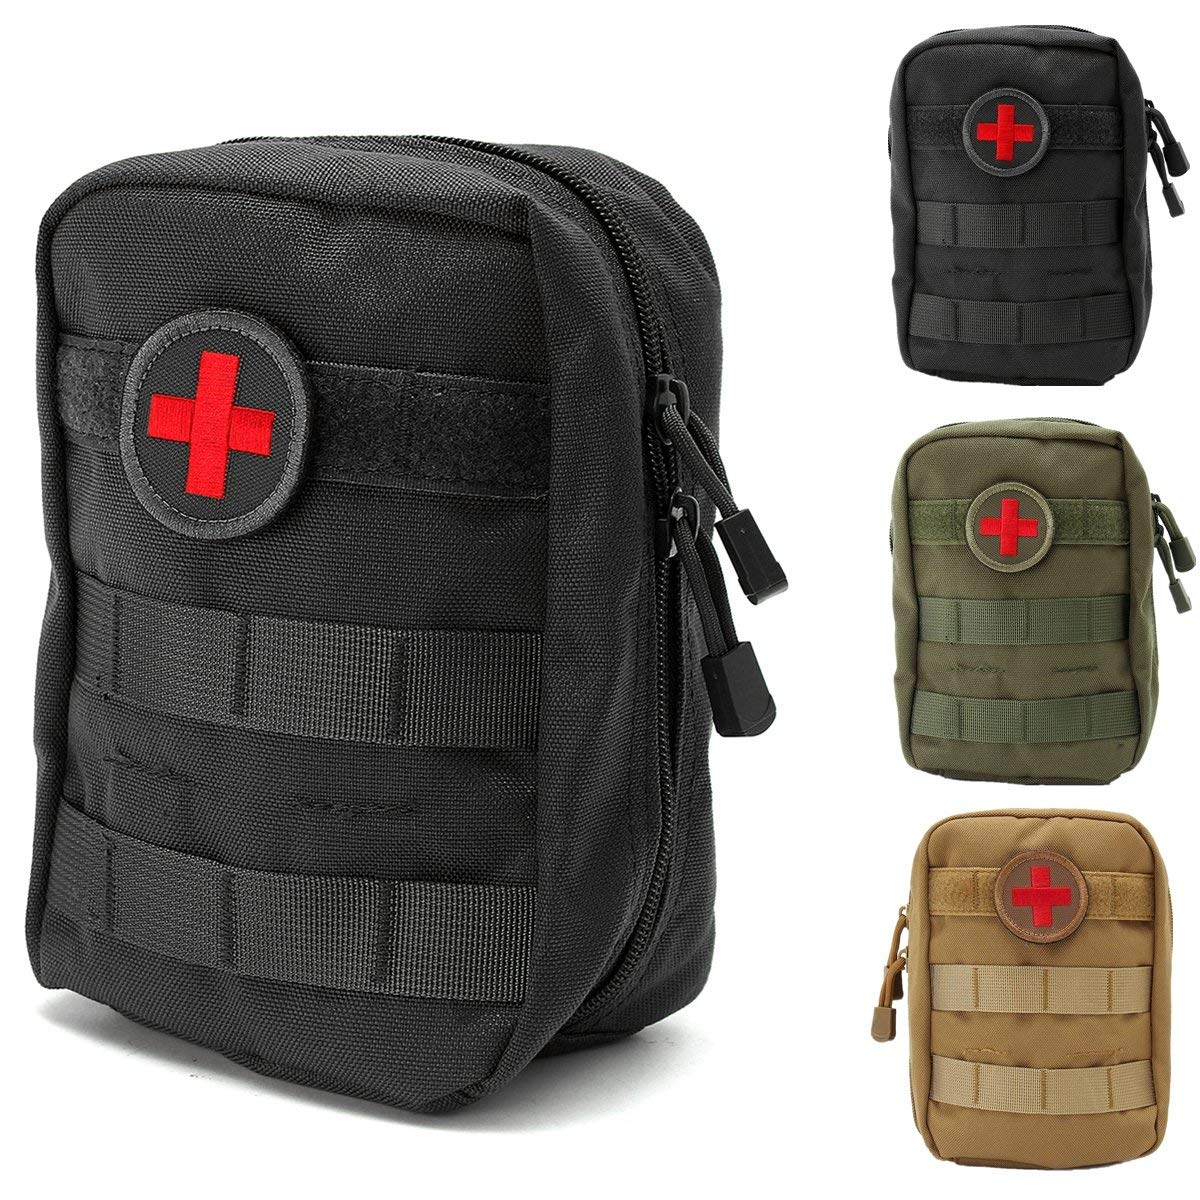 Protective Gear 900D Nylon Tactical Molle Waist Bag Medical First Aid Utility Emergency Pouch - (Color: Brown)